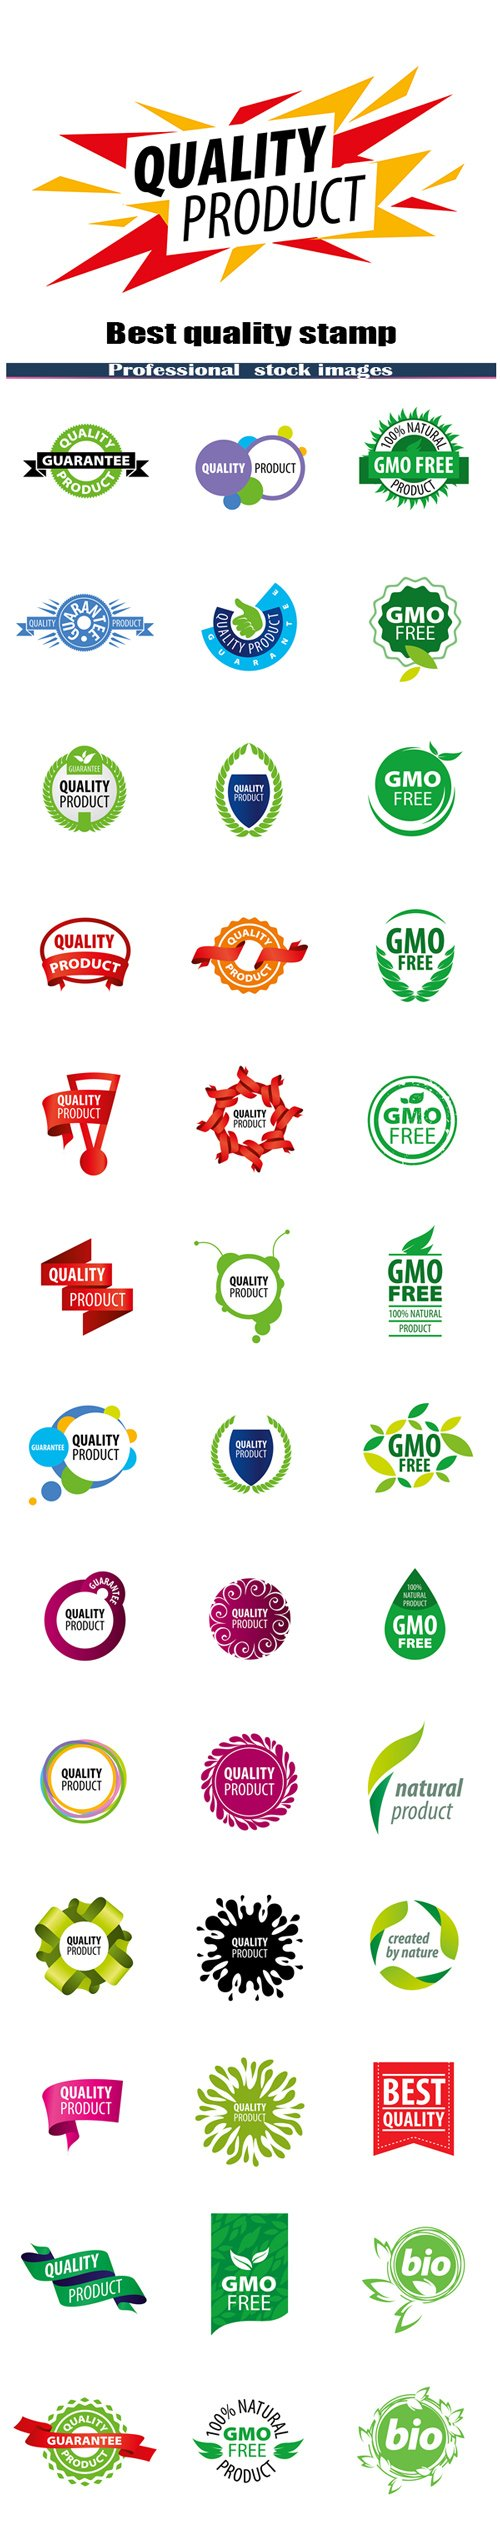 Best quality stamp and logo gmo free